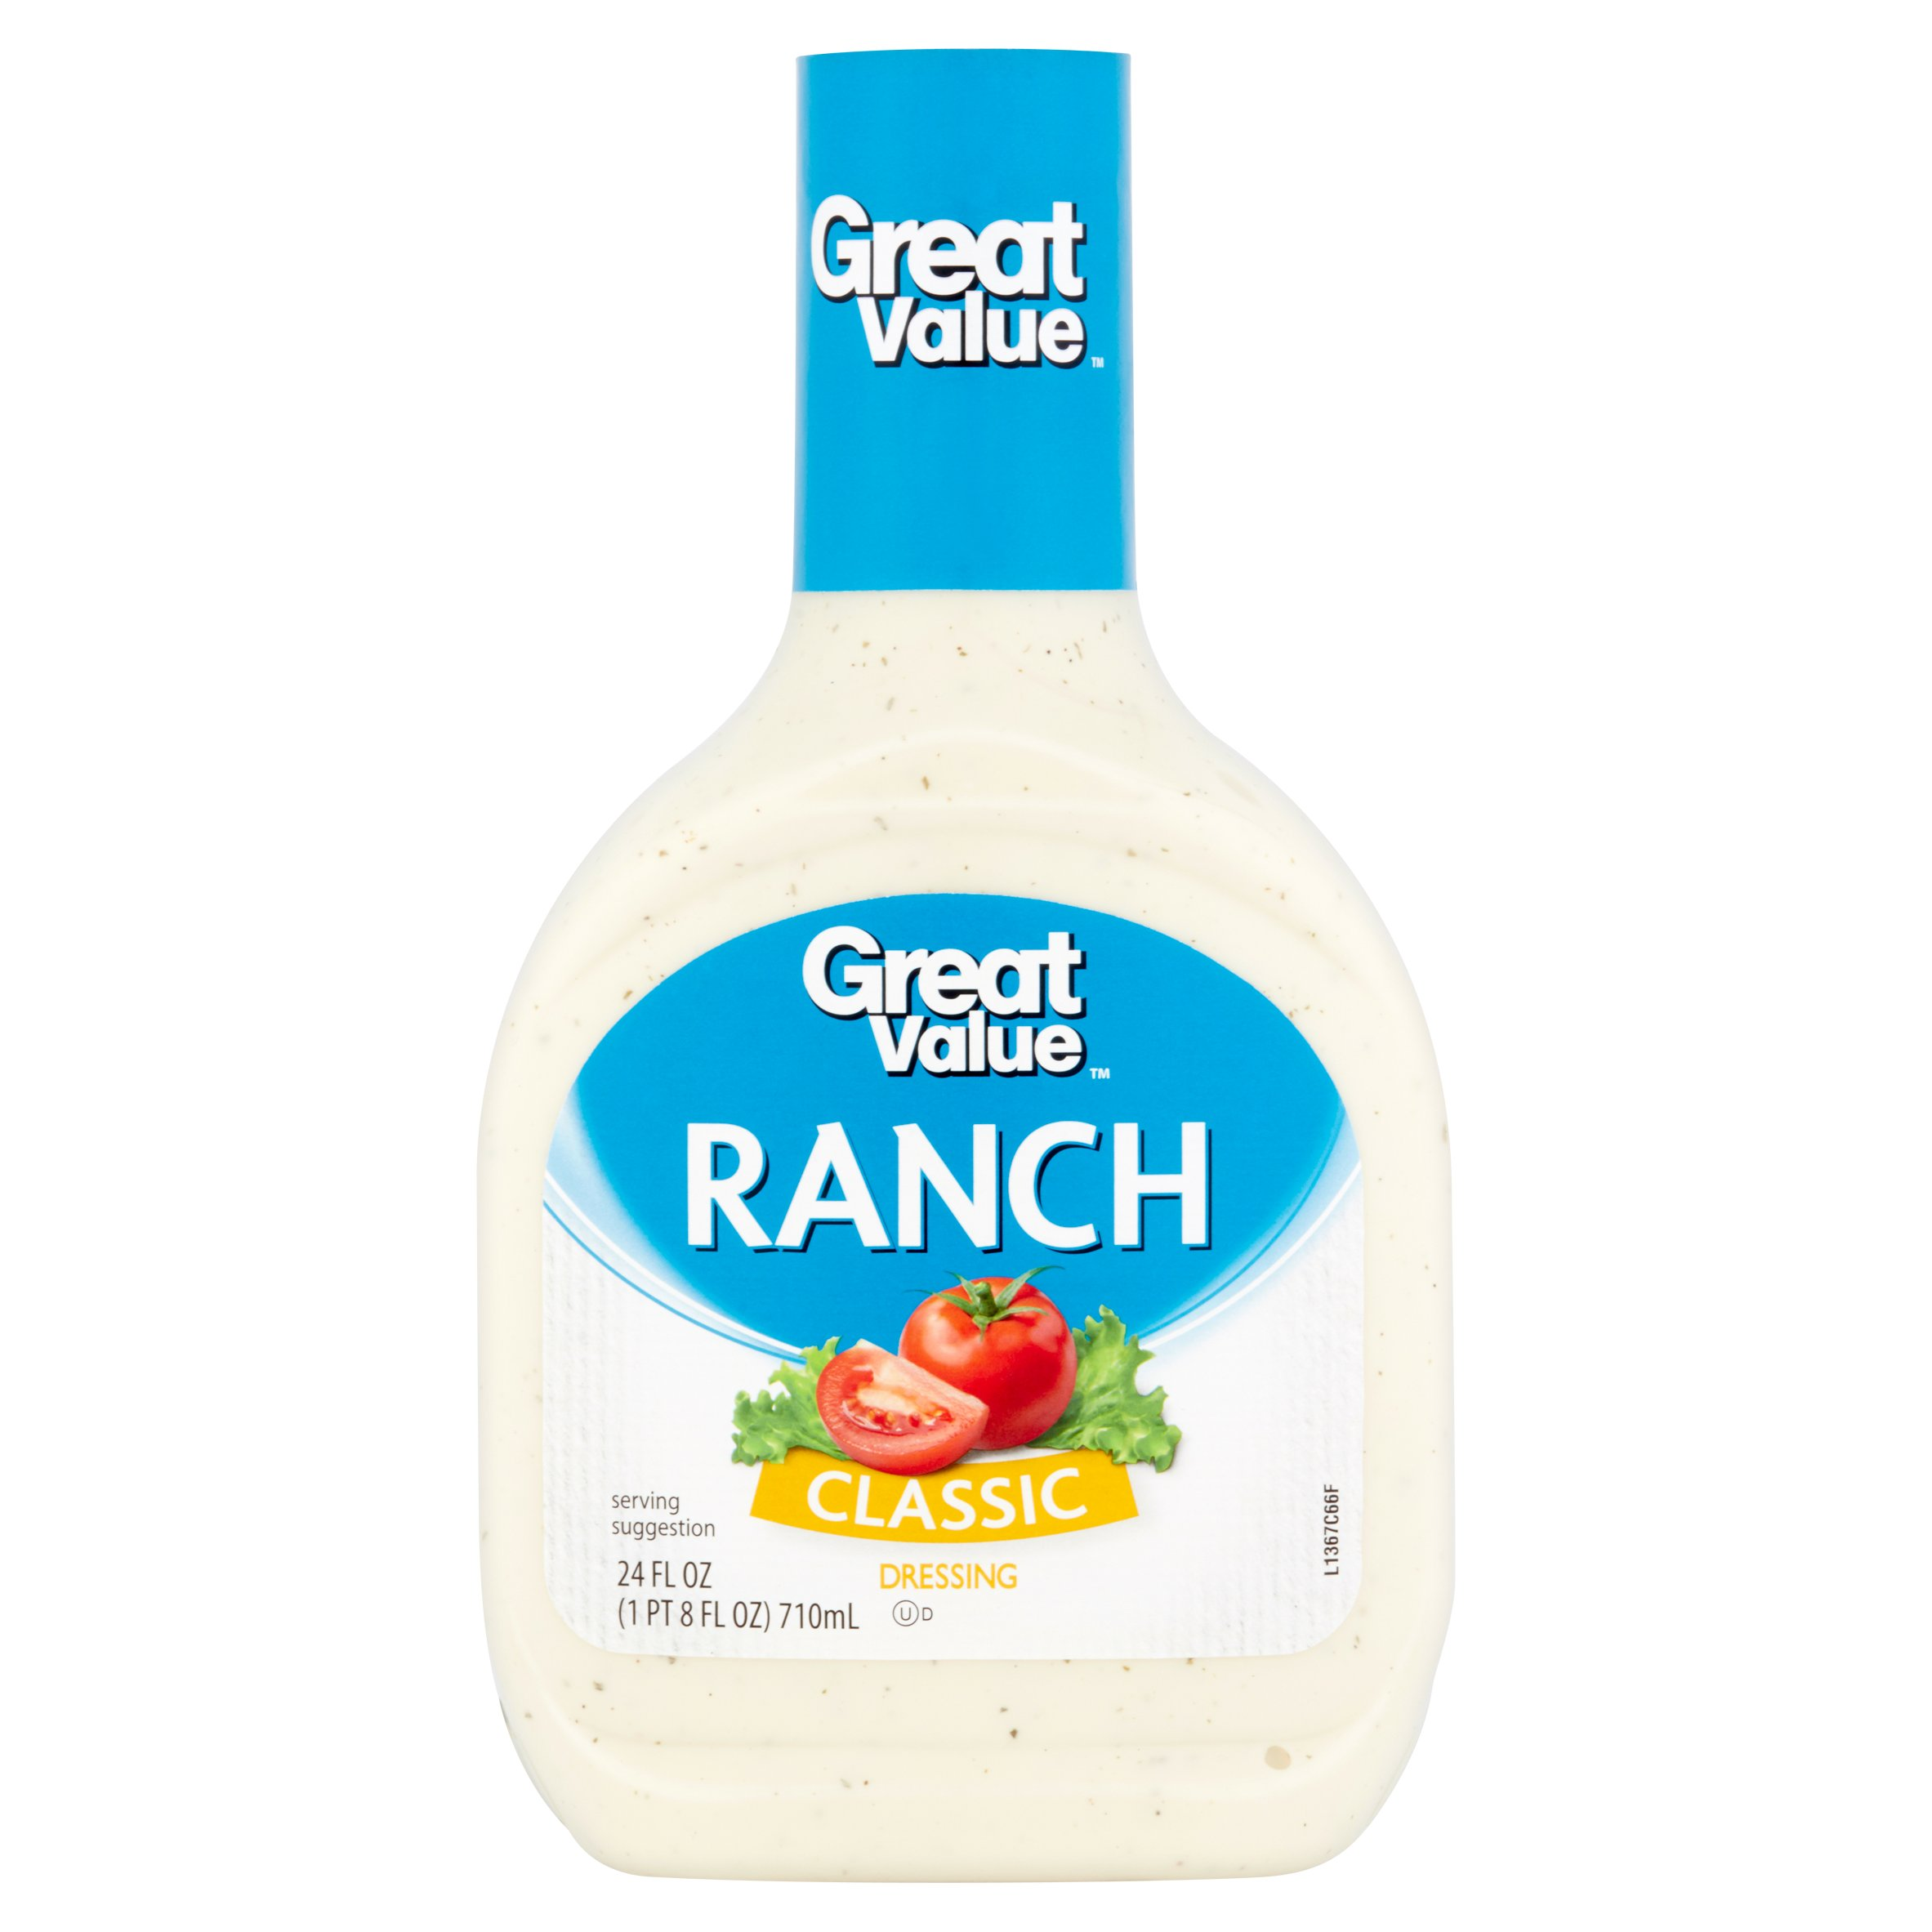 Great Value Classic Ranch Dressing, 24 fl oz